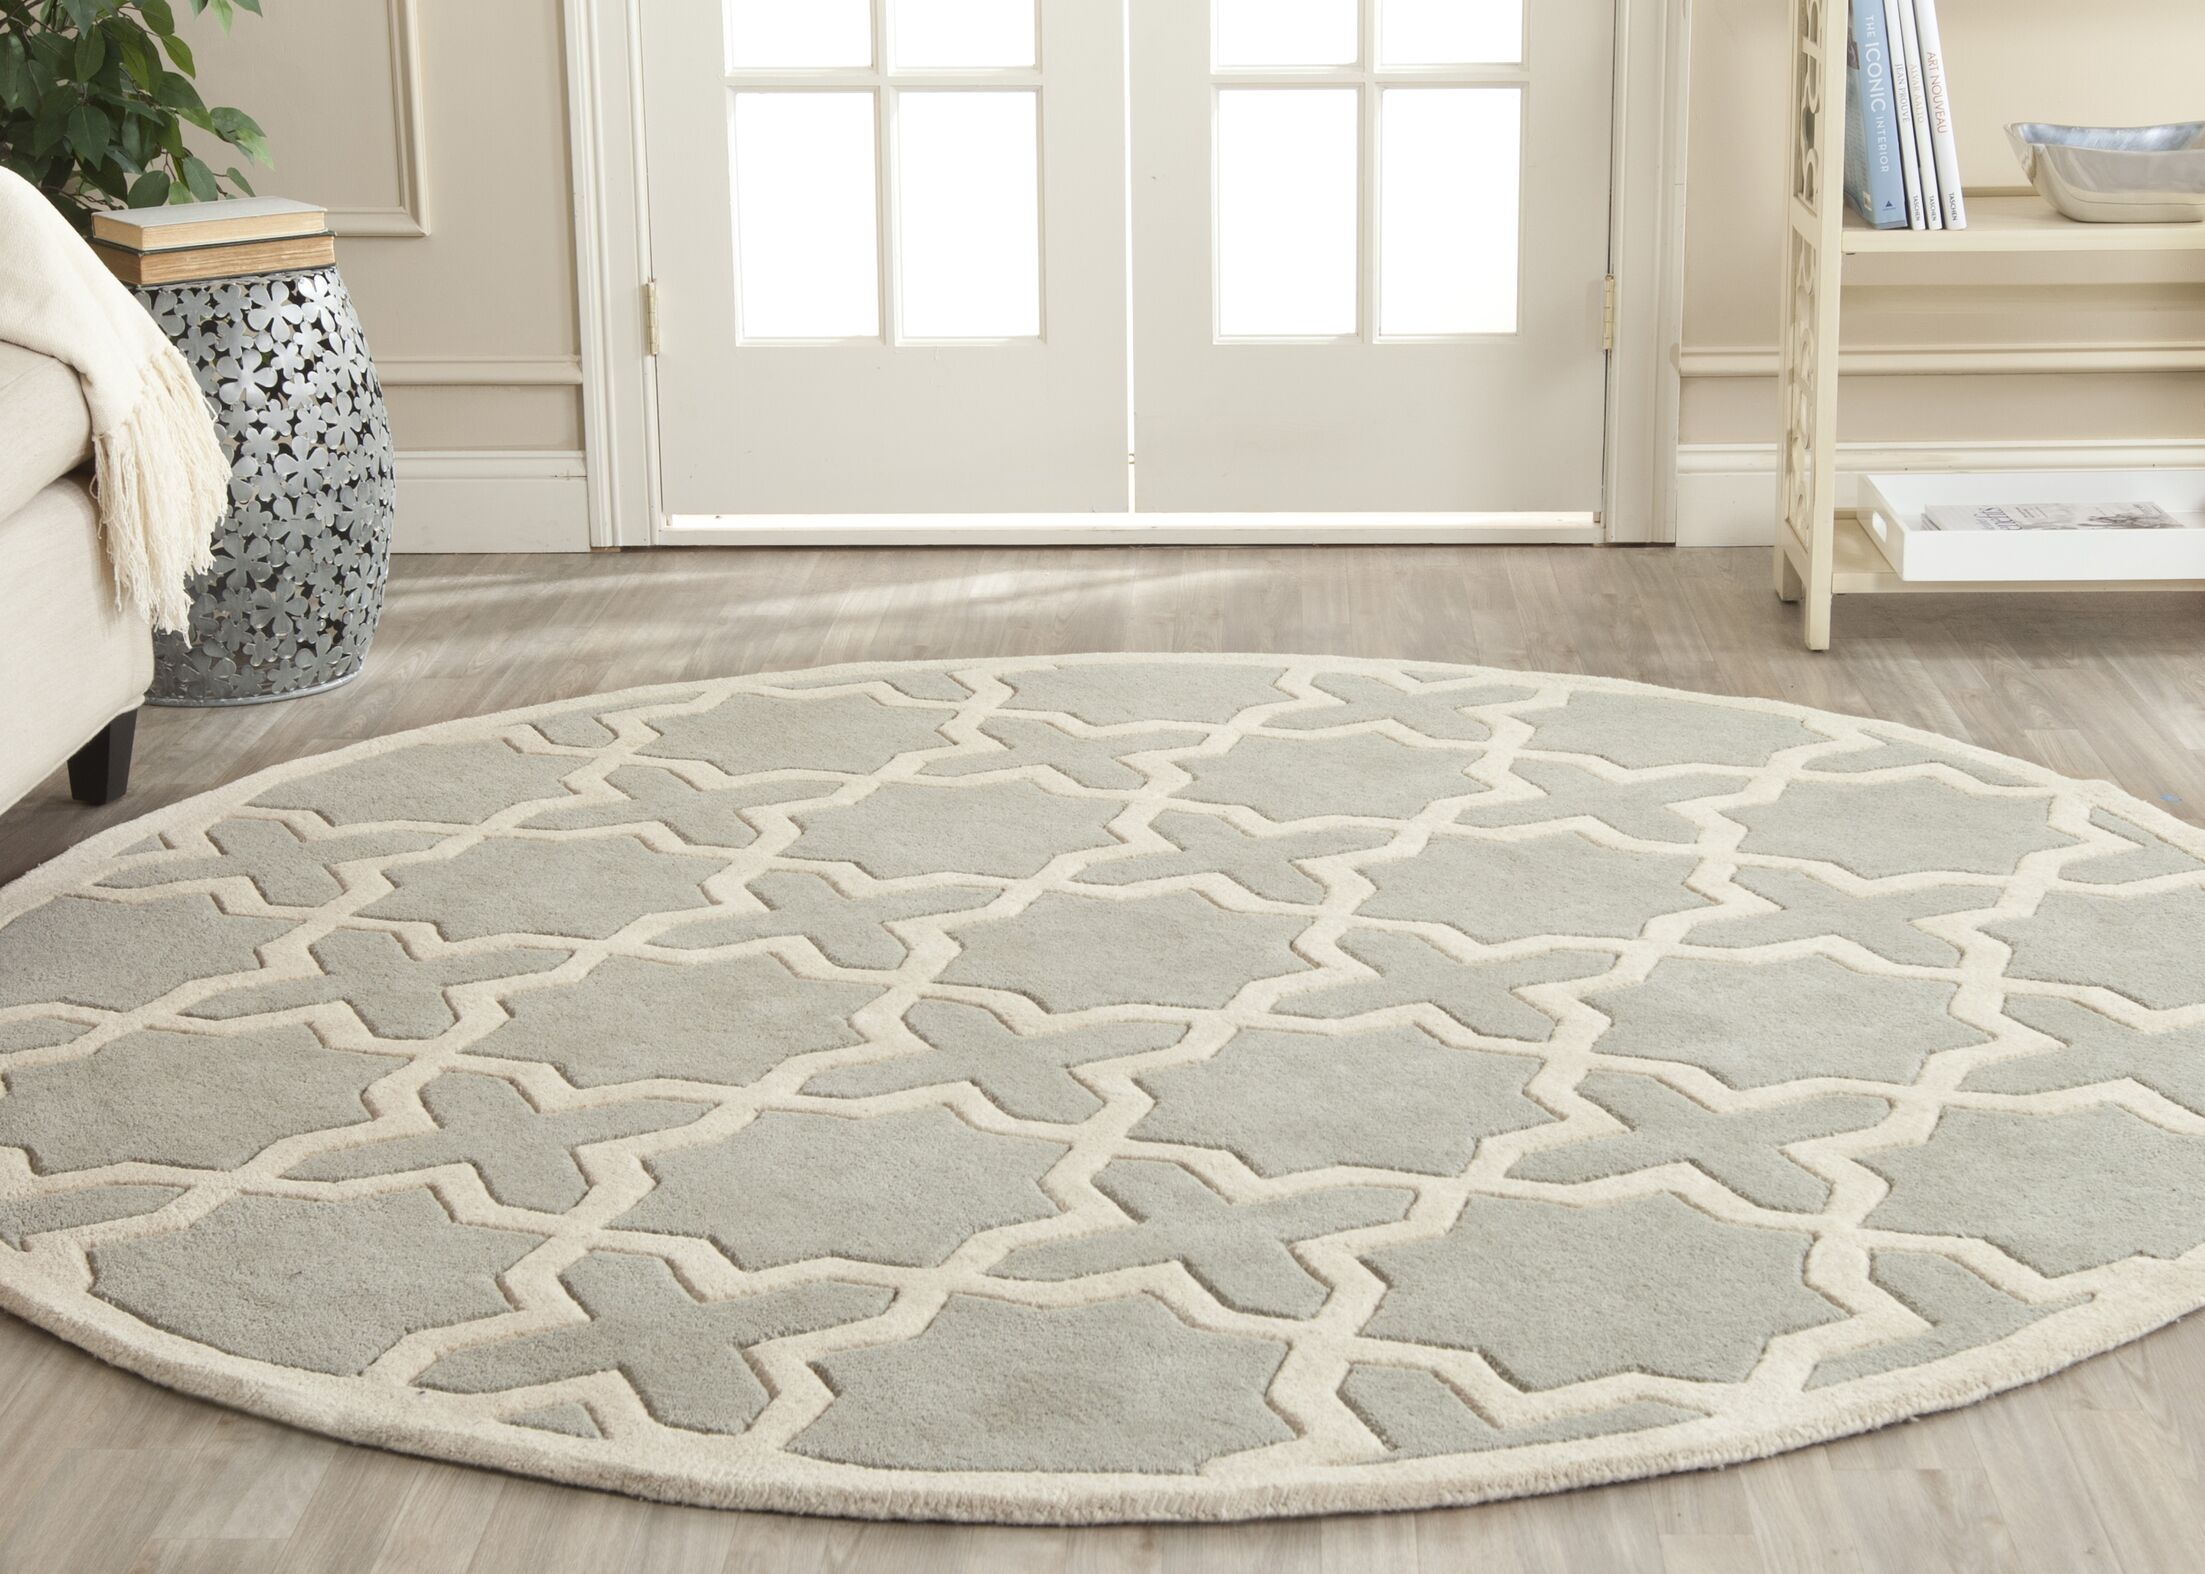 Wilkin Hand-Woven Gray Area Rug Rug Size: Round 5'